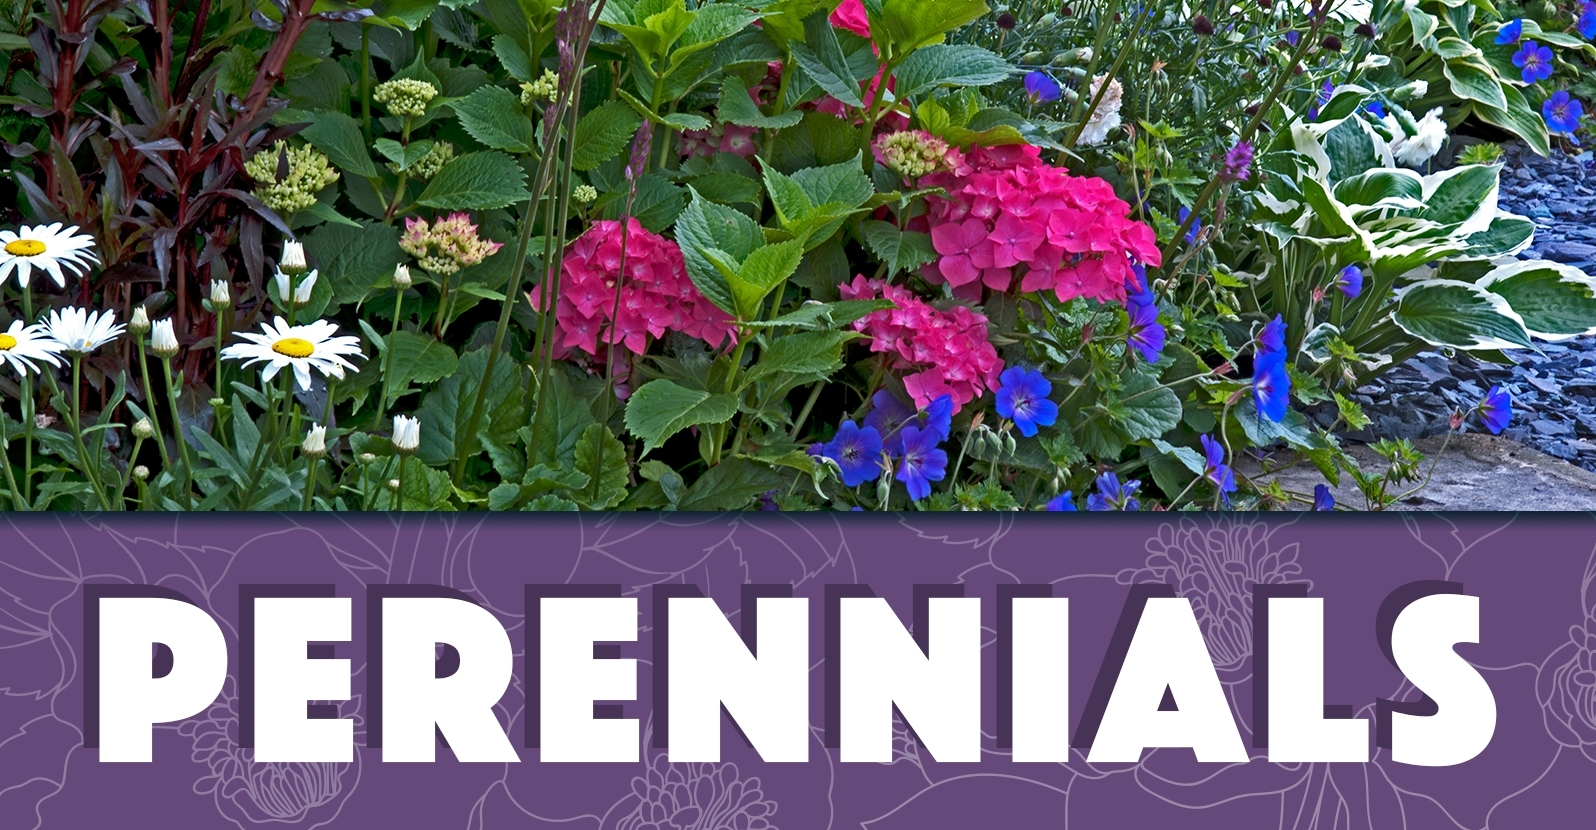 All About Growing Perennial Plants